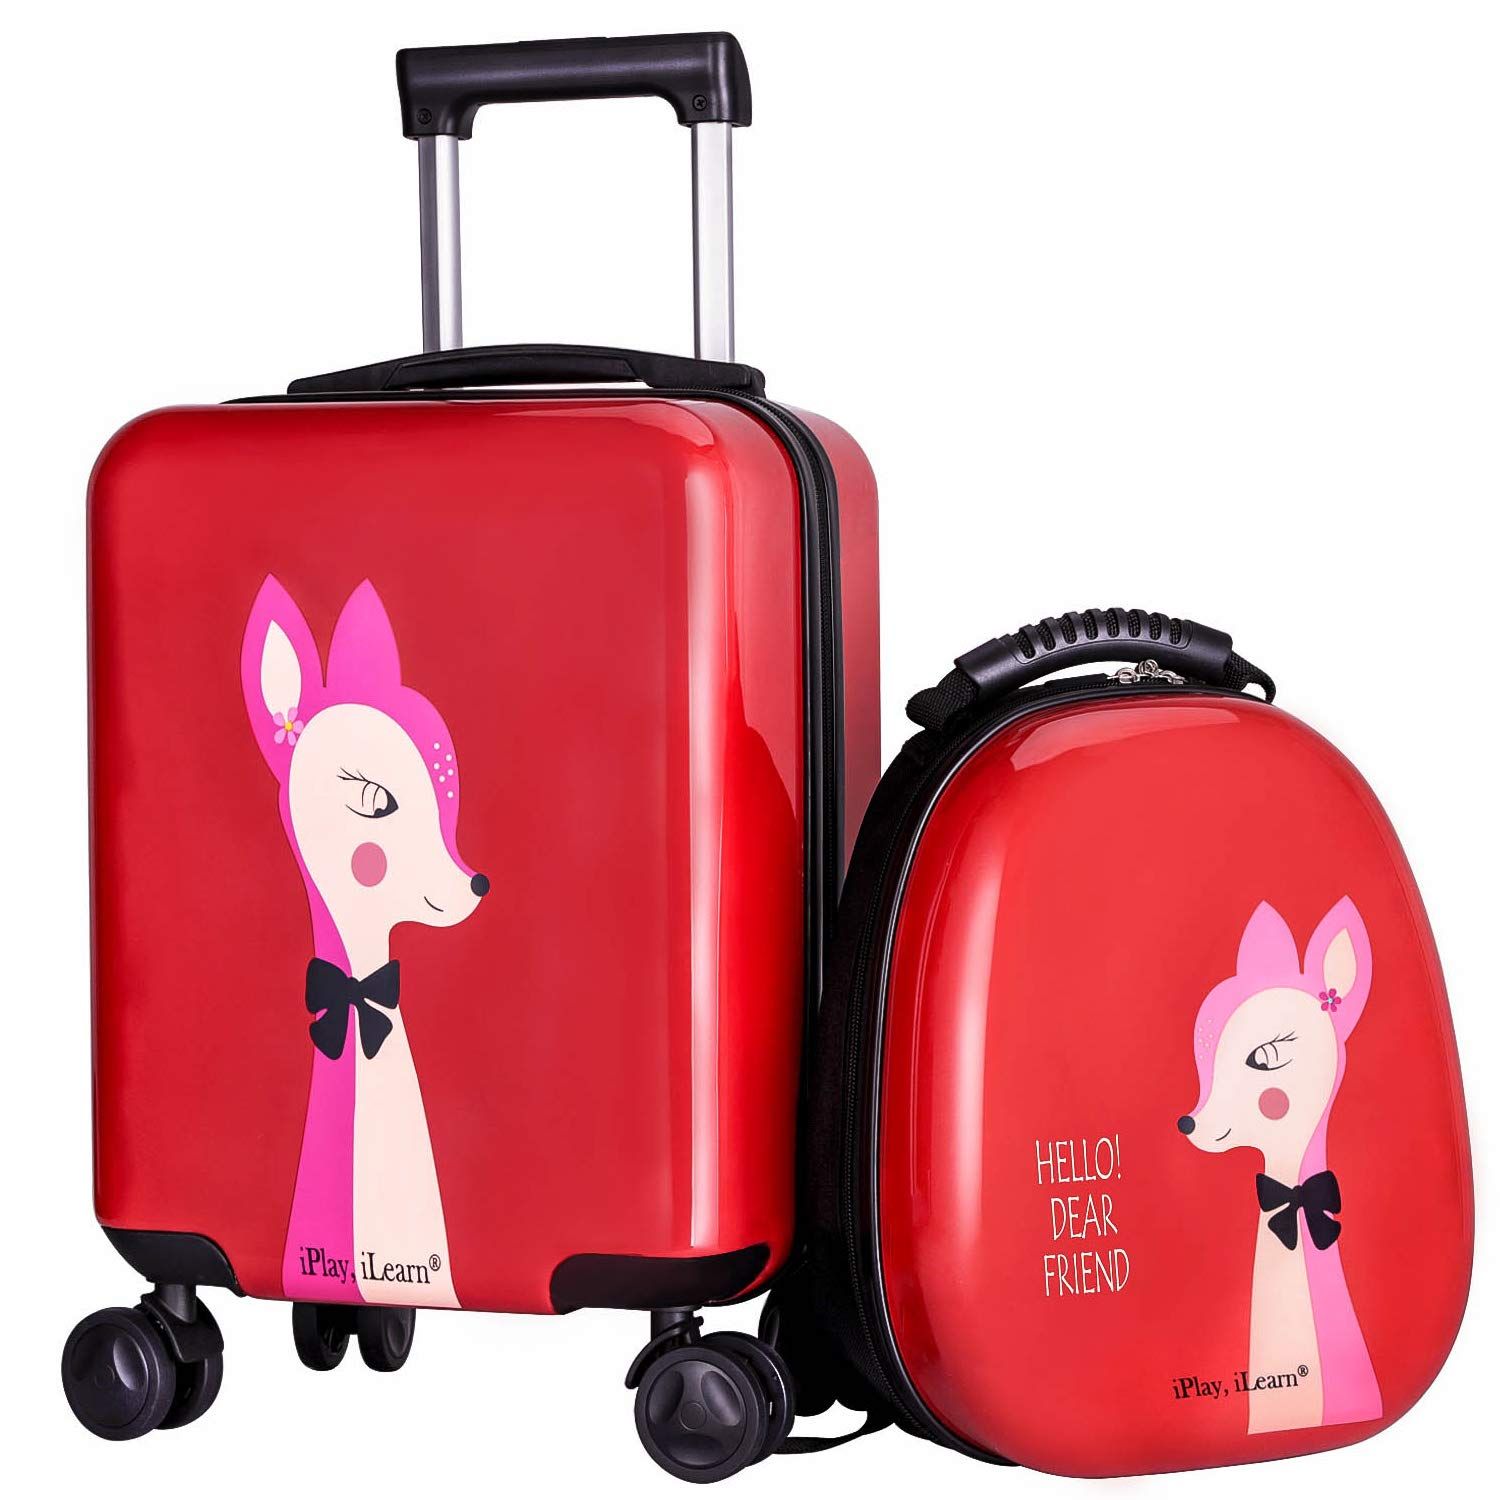 Kids Luggage, Hard Shell Travel Carry on Suitcase for Boys, Girls, Toddler, Children iPlay iLearn LU-NWDR-153